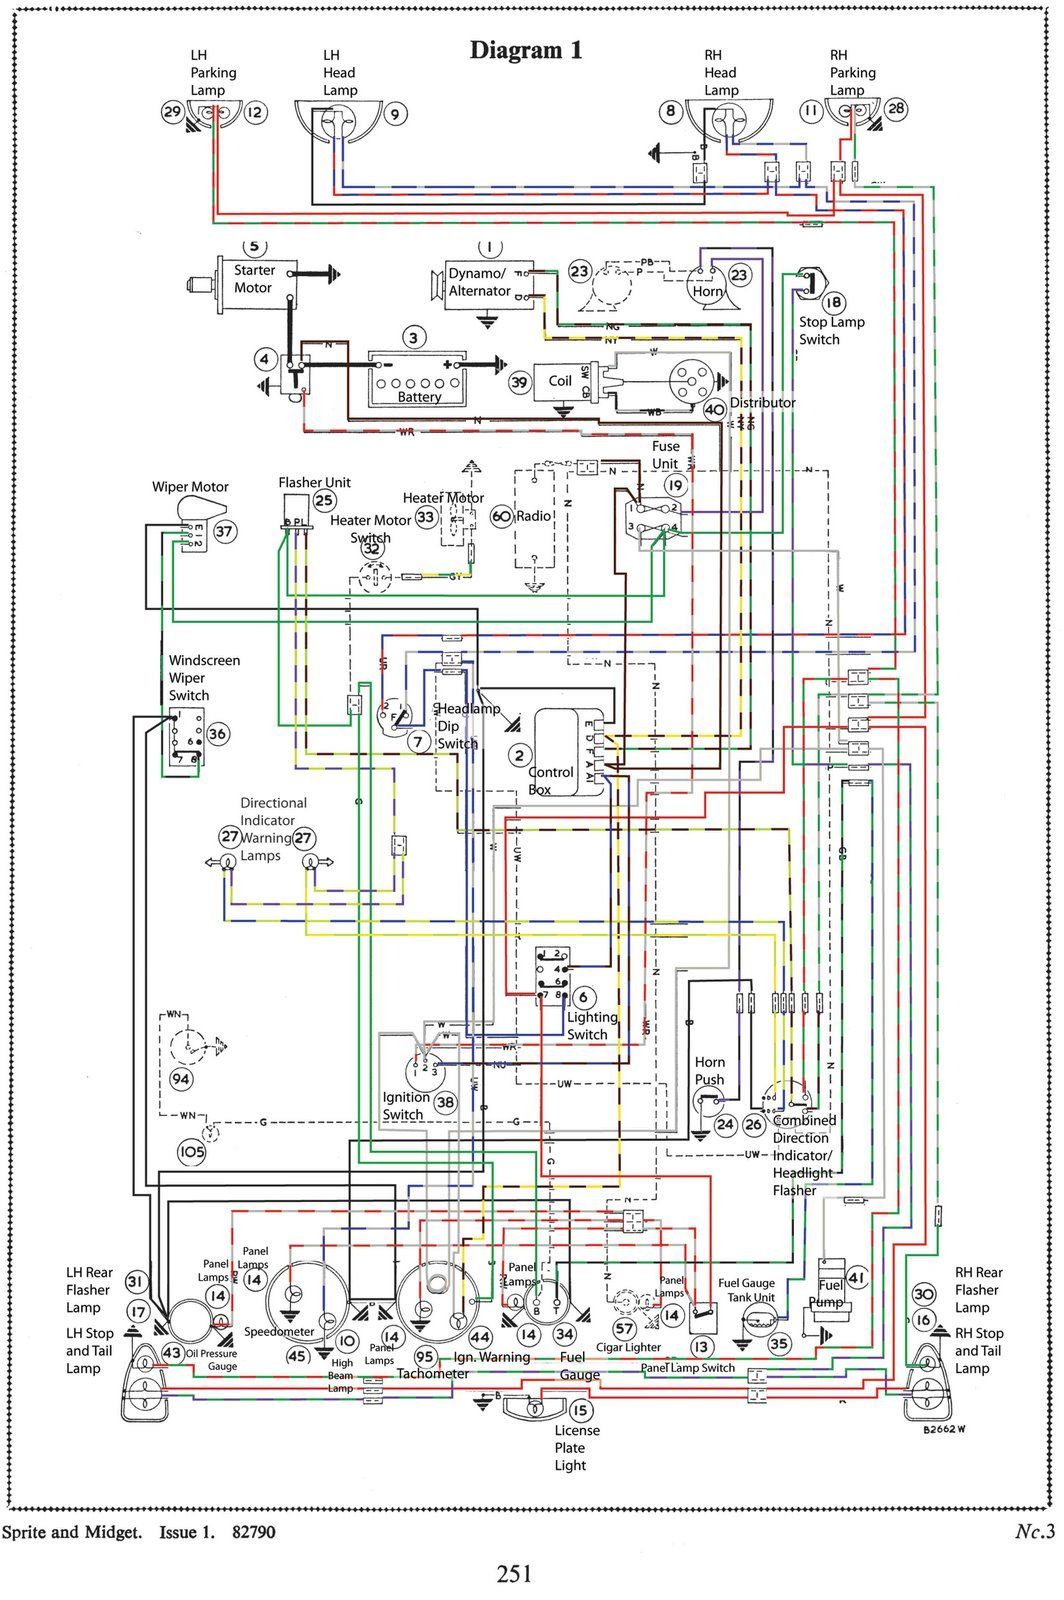 midget wiring diagram simple wiring diagram 1976 mg midget wiring diagram 1978 mg mgb wiring [ 1064 x 1600 Pixel ]